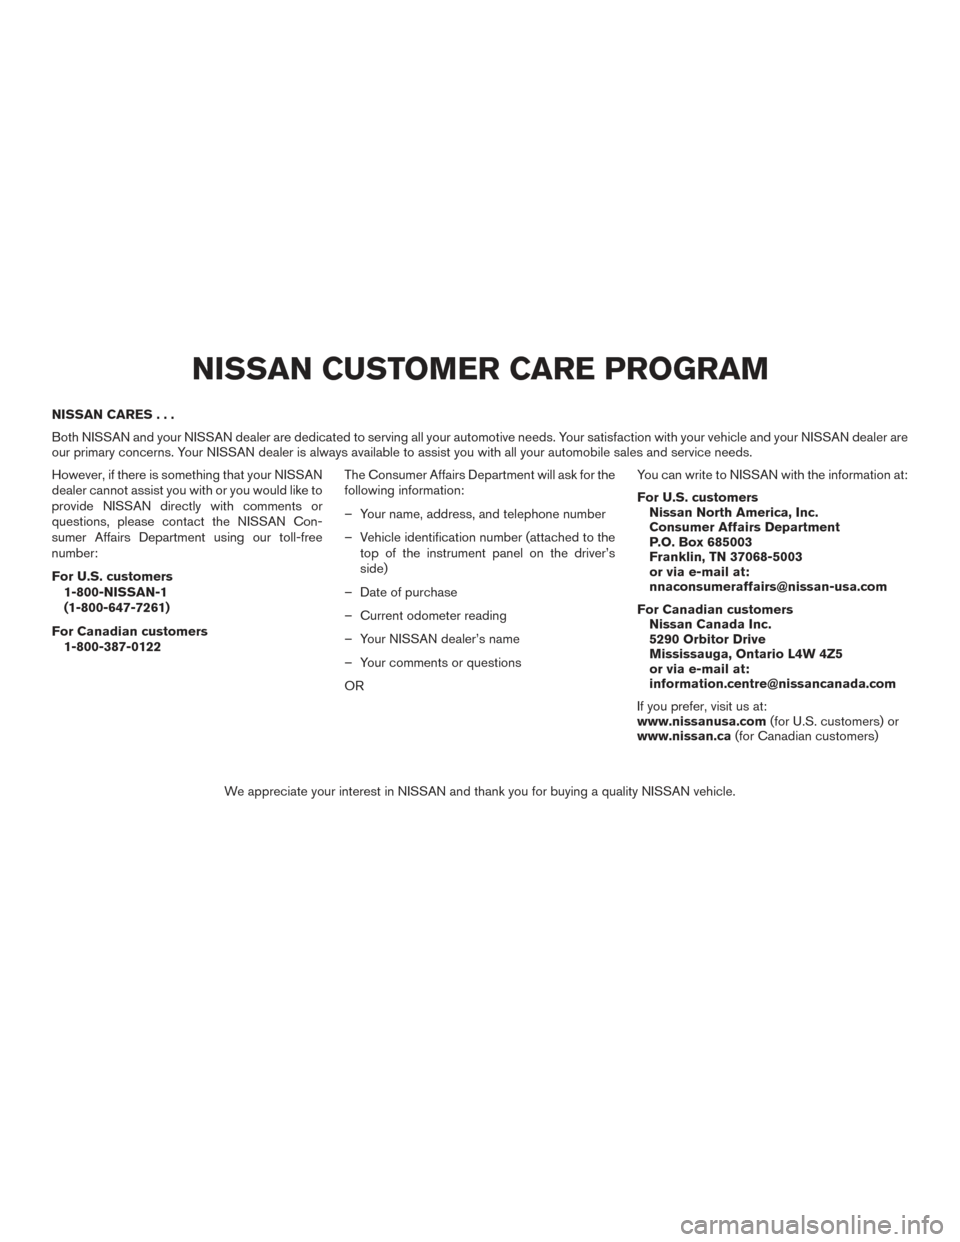 NISSAN ALTIMA 2016 L33 / 5.G Owners Manual, Page 5